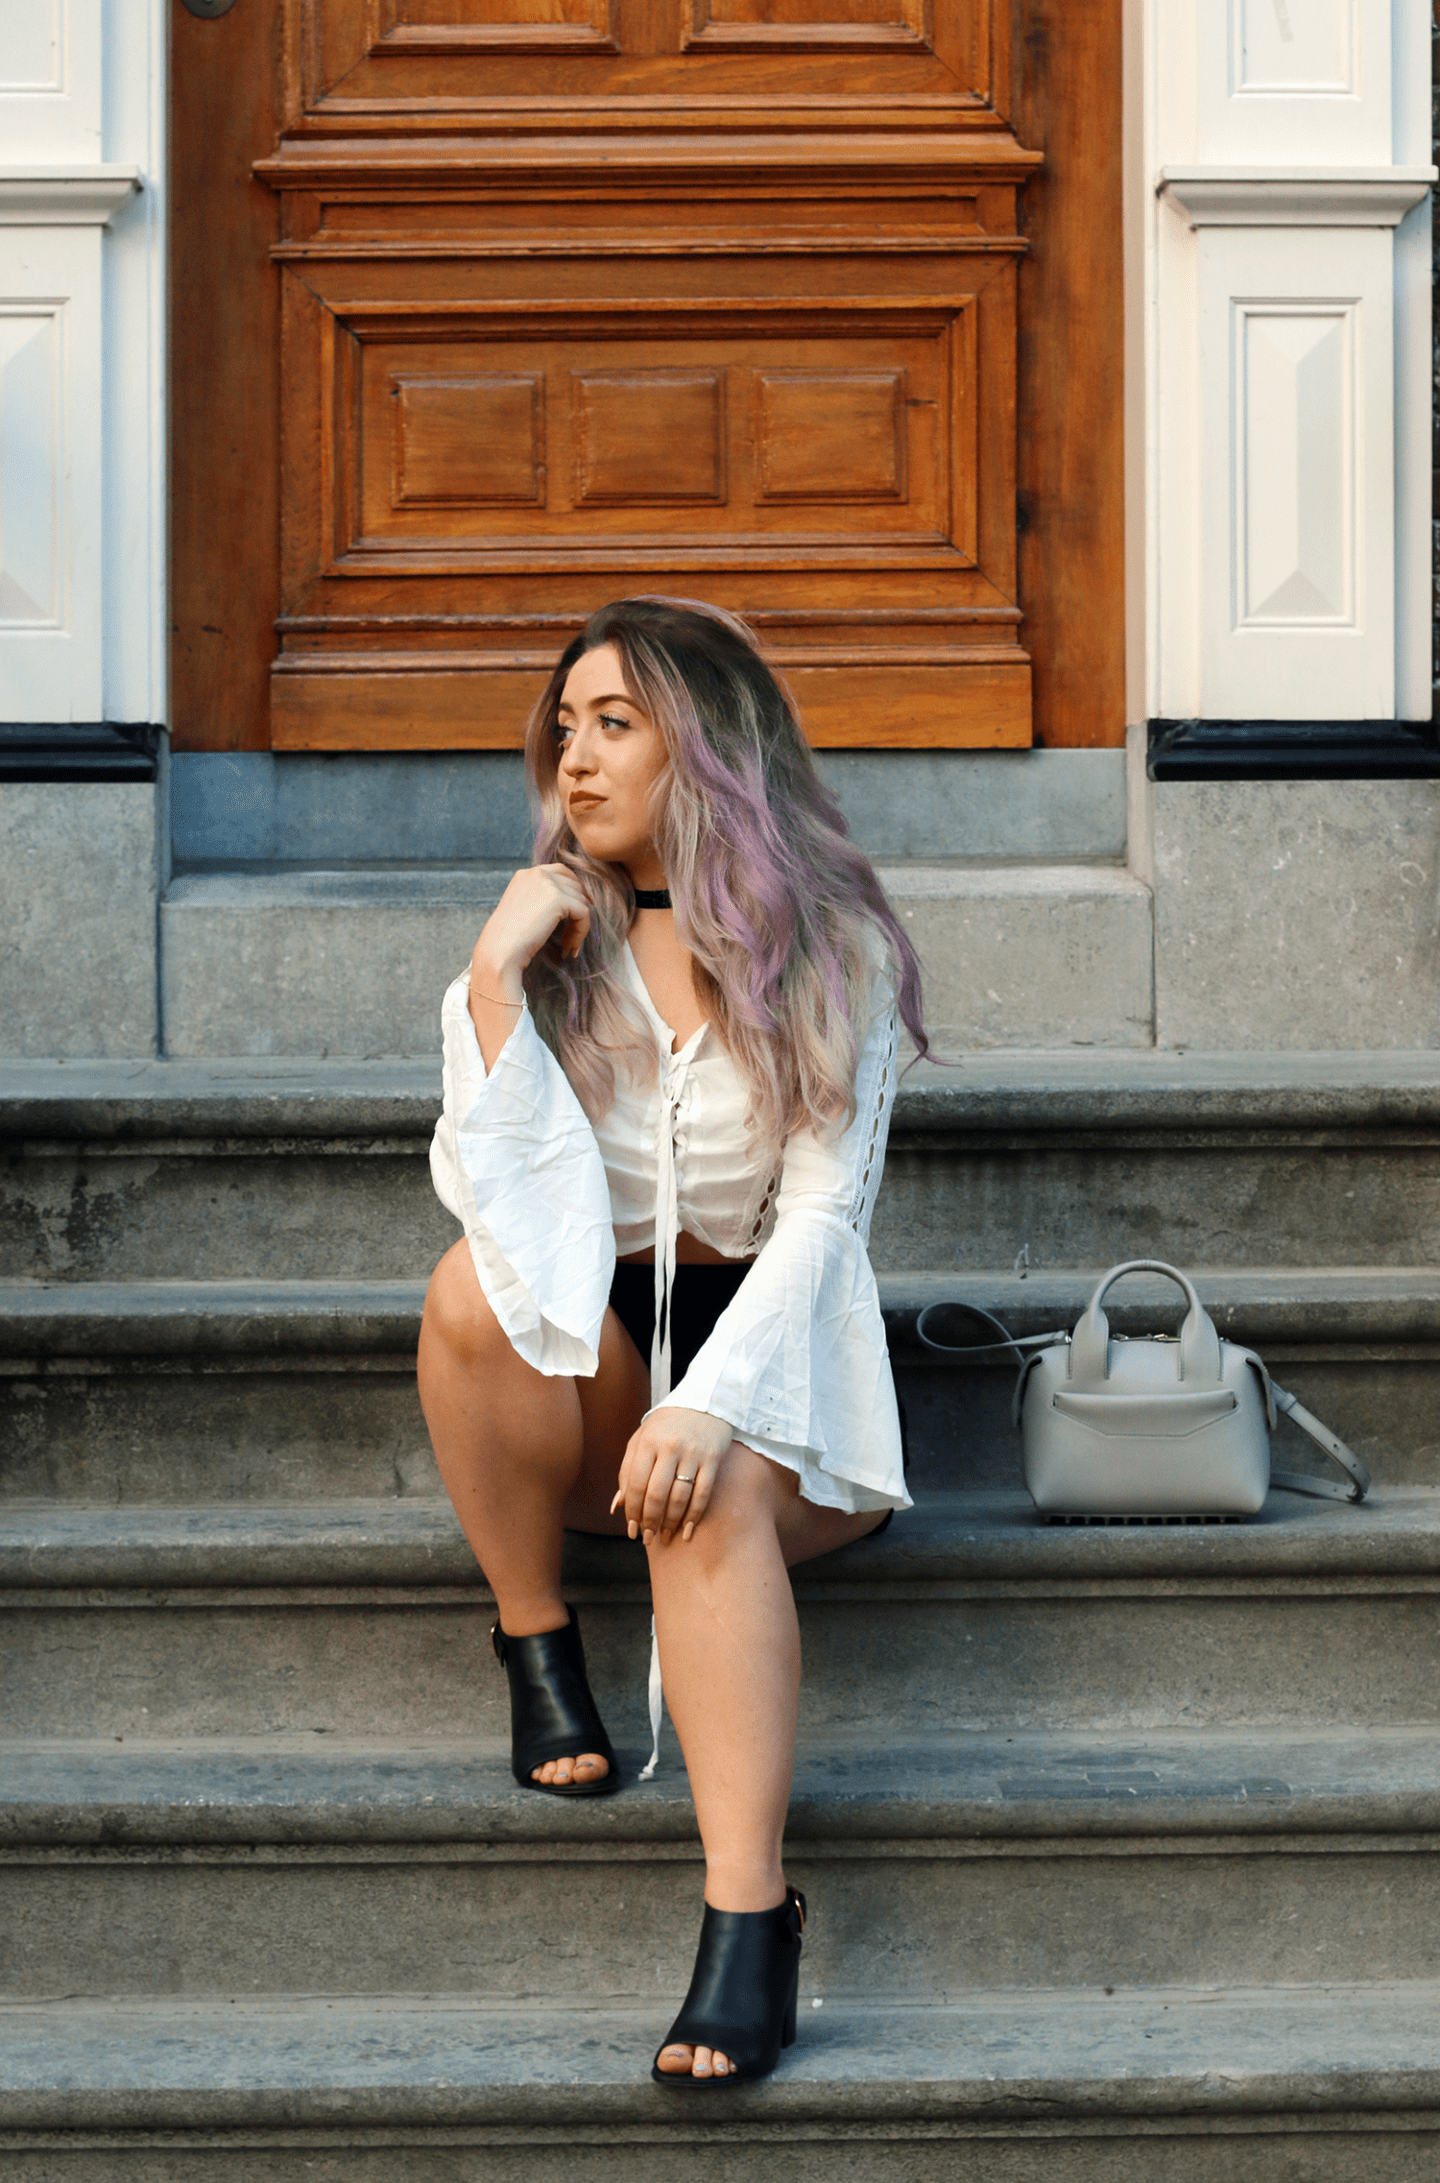 OUTFIT OF THE DAY | Boho Chic